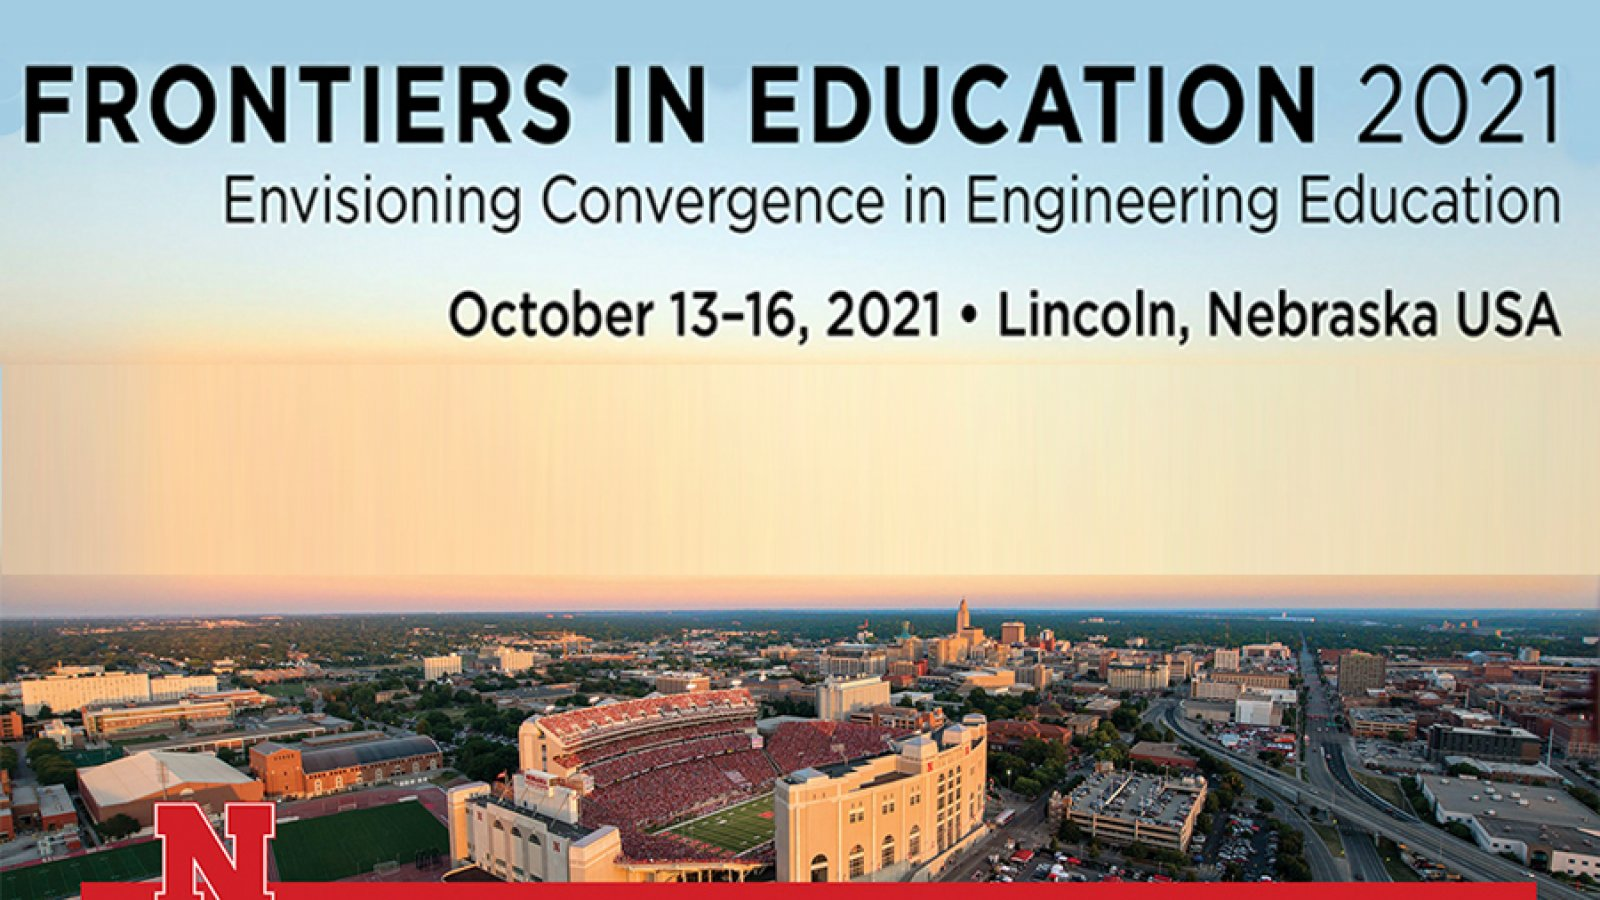 Frontiers in Education 2021 conference will be October 13-16 in Lincoln.